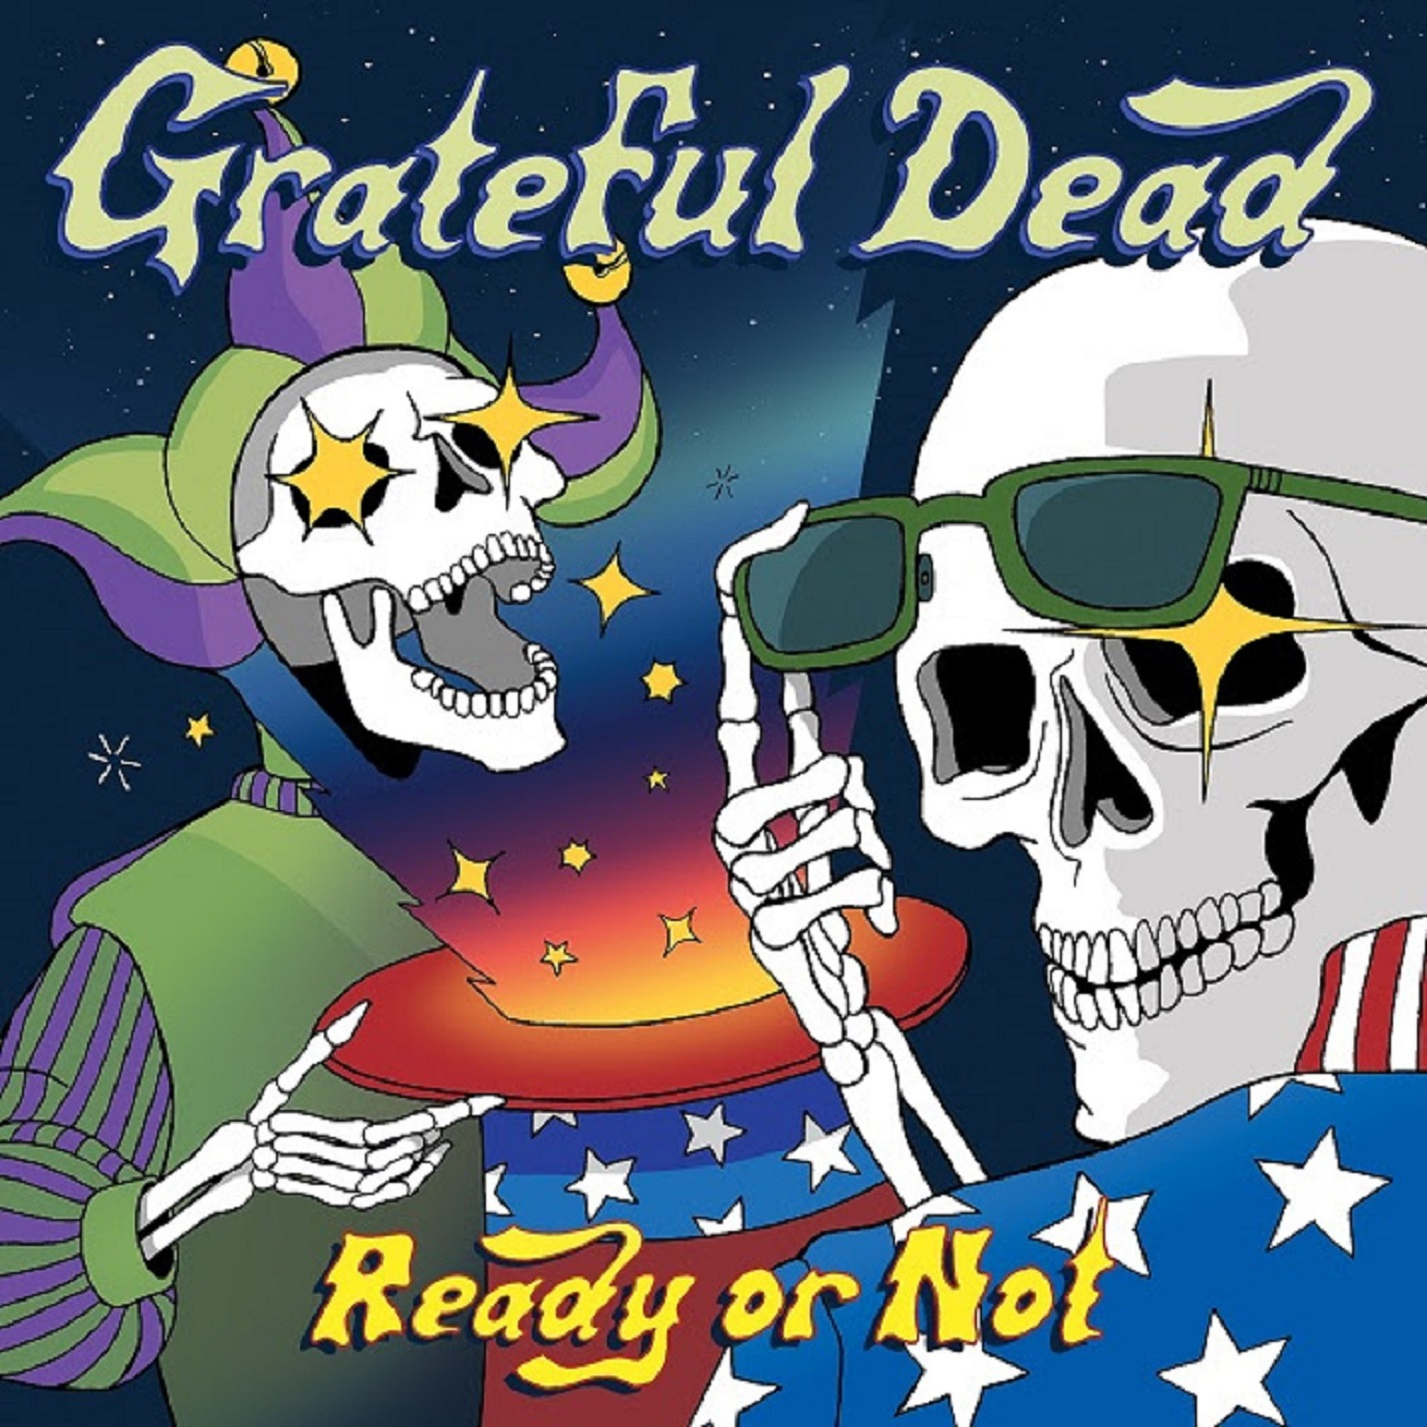 Dead.net Introduces Ready Or Not